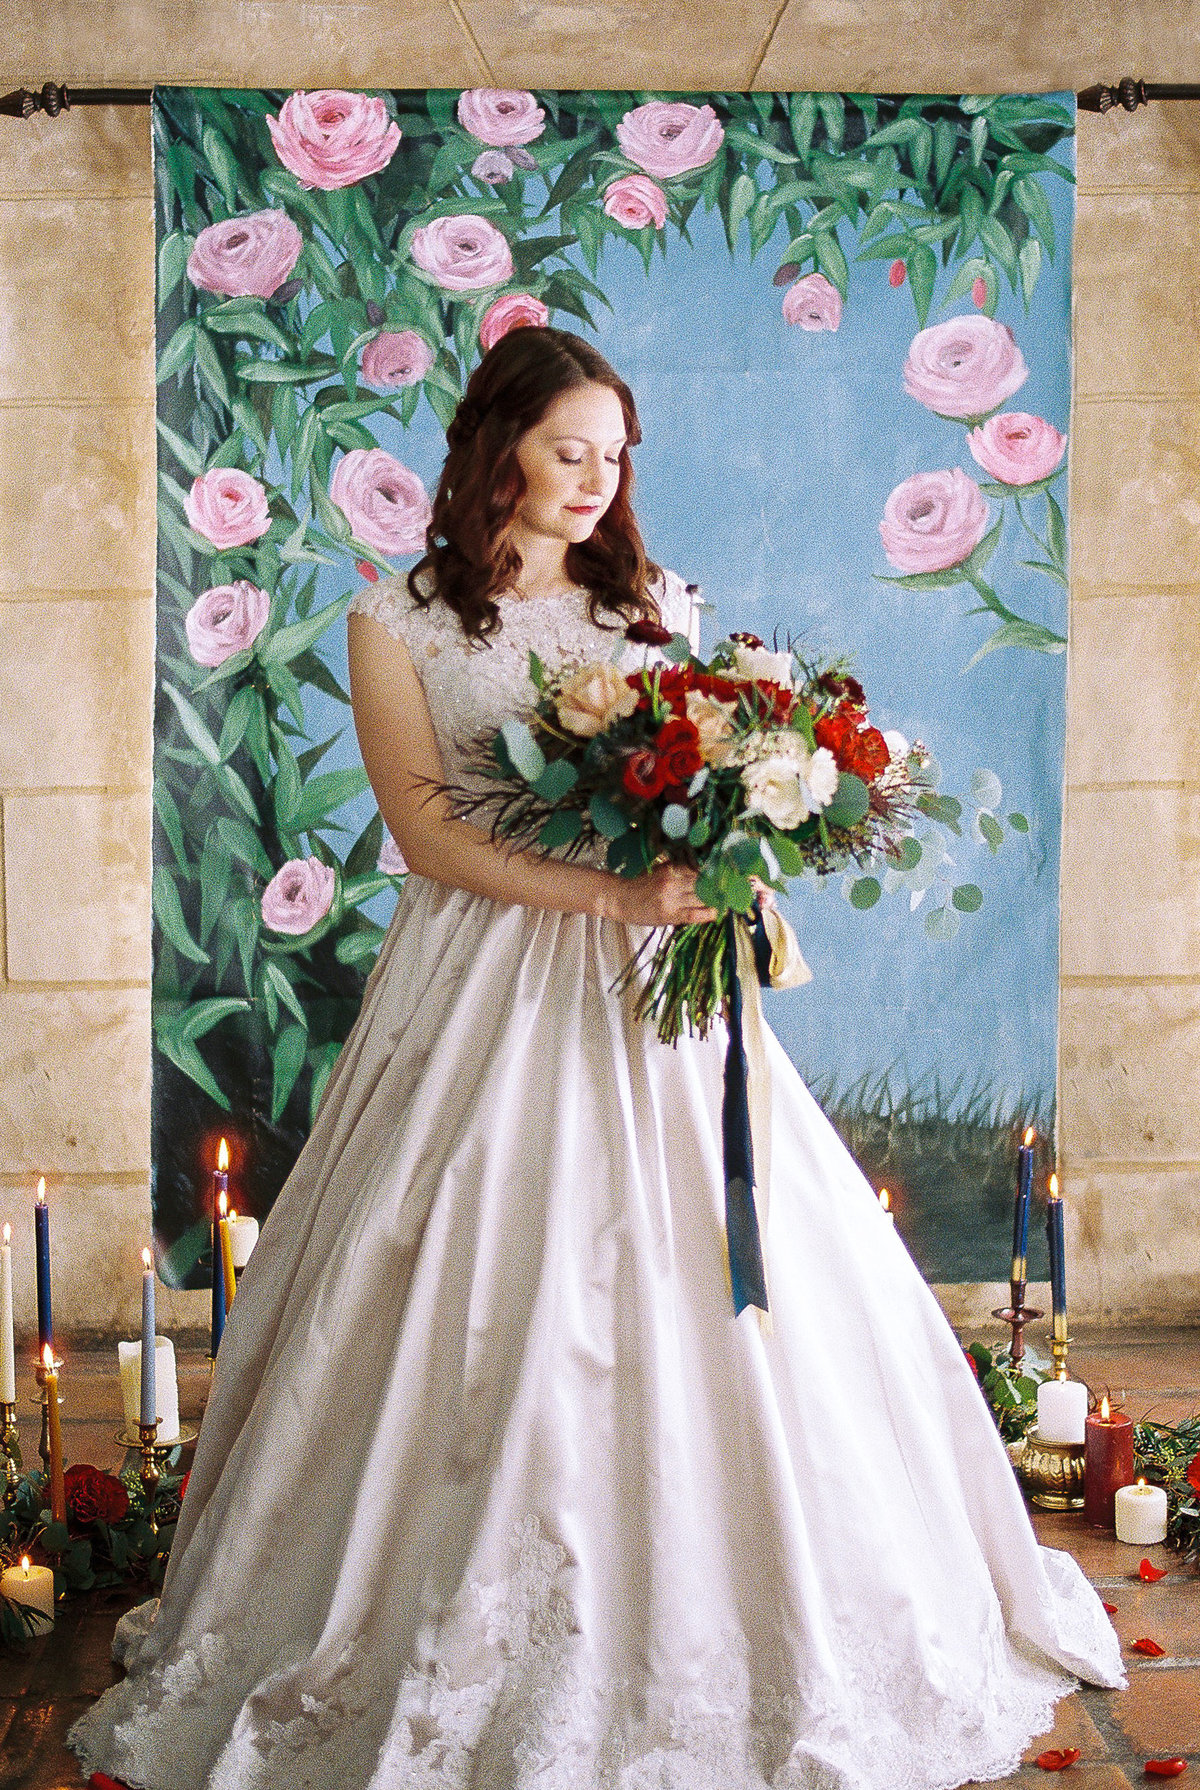 Bride standing in front of Beauty and the Beast inspired floral wedding backdrop By Brittany Branson as featured on Inside Weddings